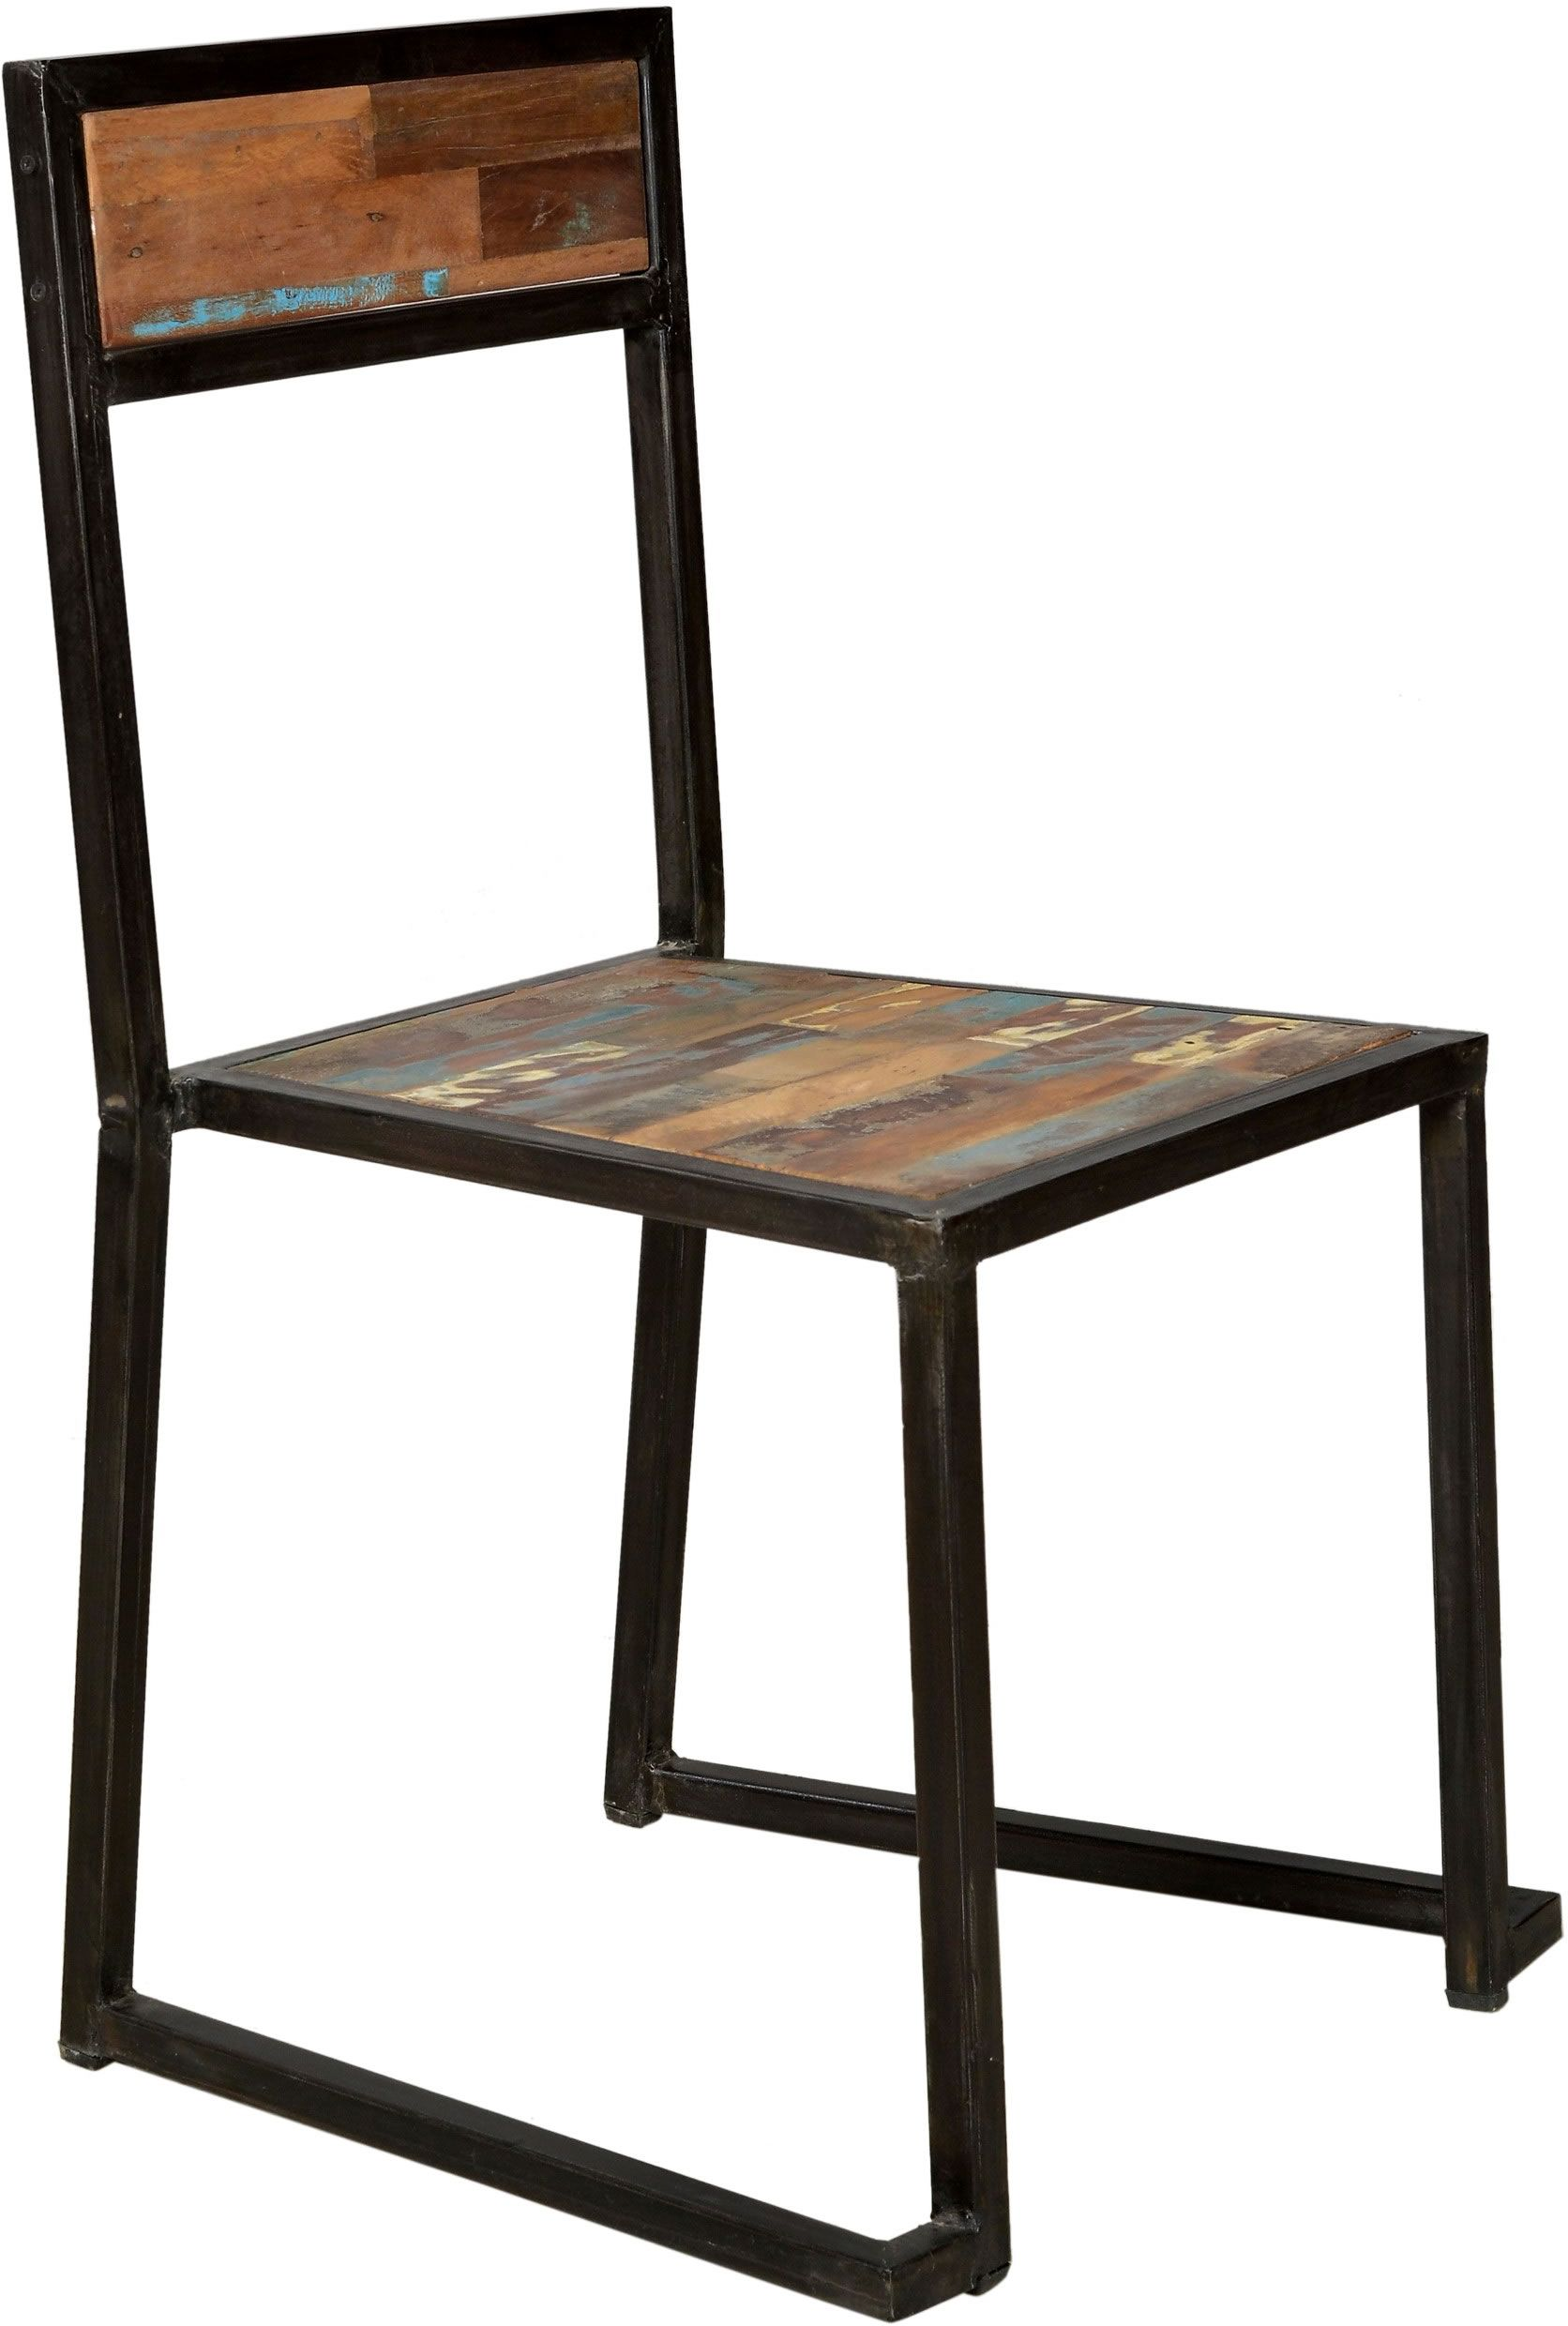 teak folding chairs canada optic gaming chair cdi furniture trend dining set of 2